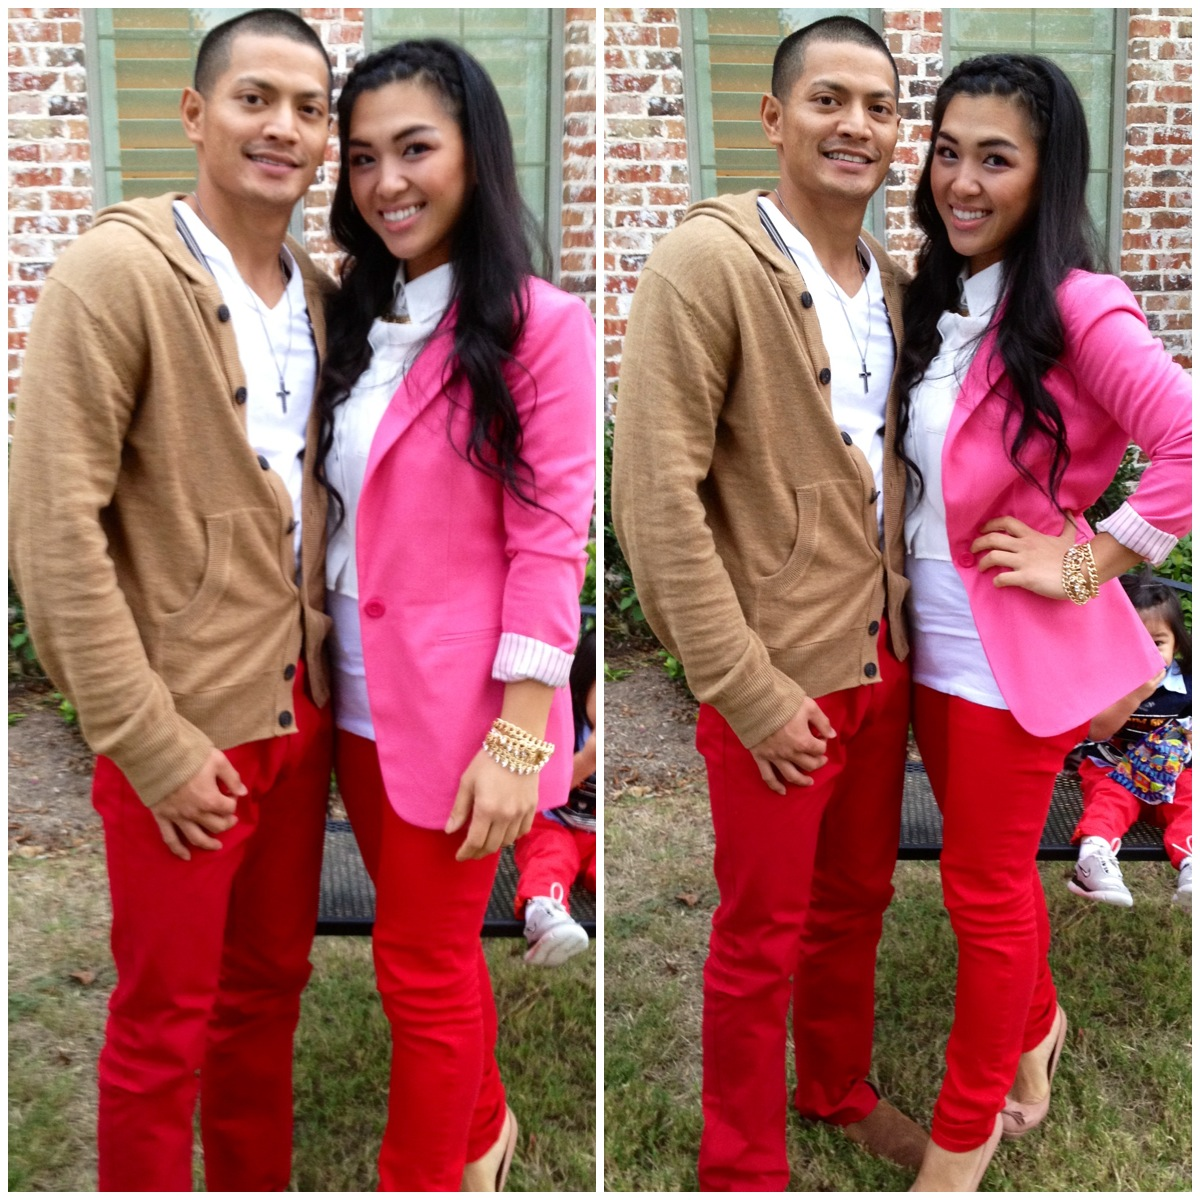 Kat.C.SoKreative: OOTD: Red pants (Family Day) 10.07.12